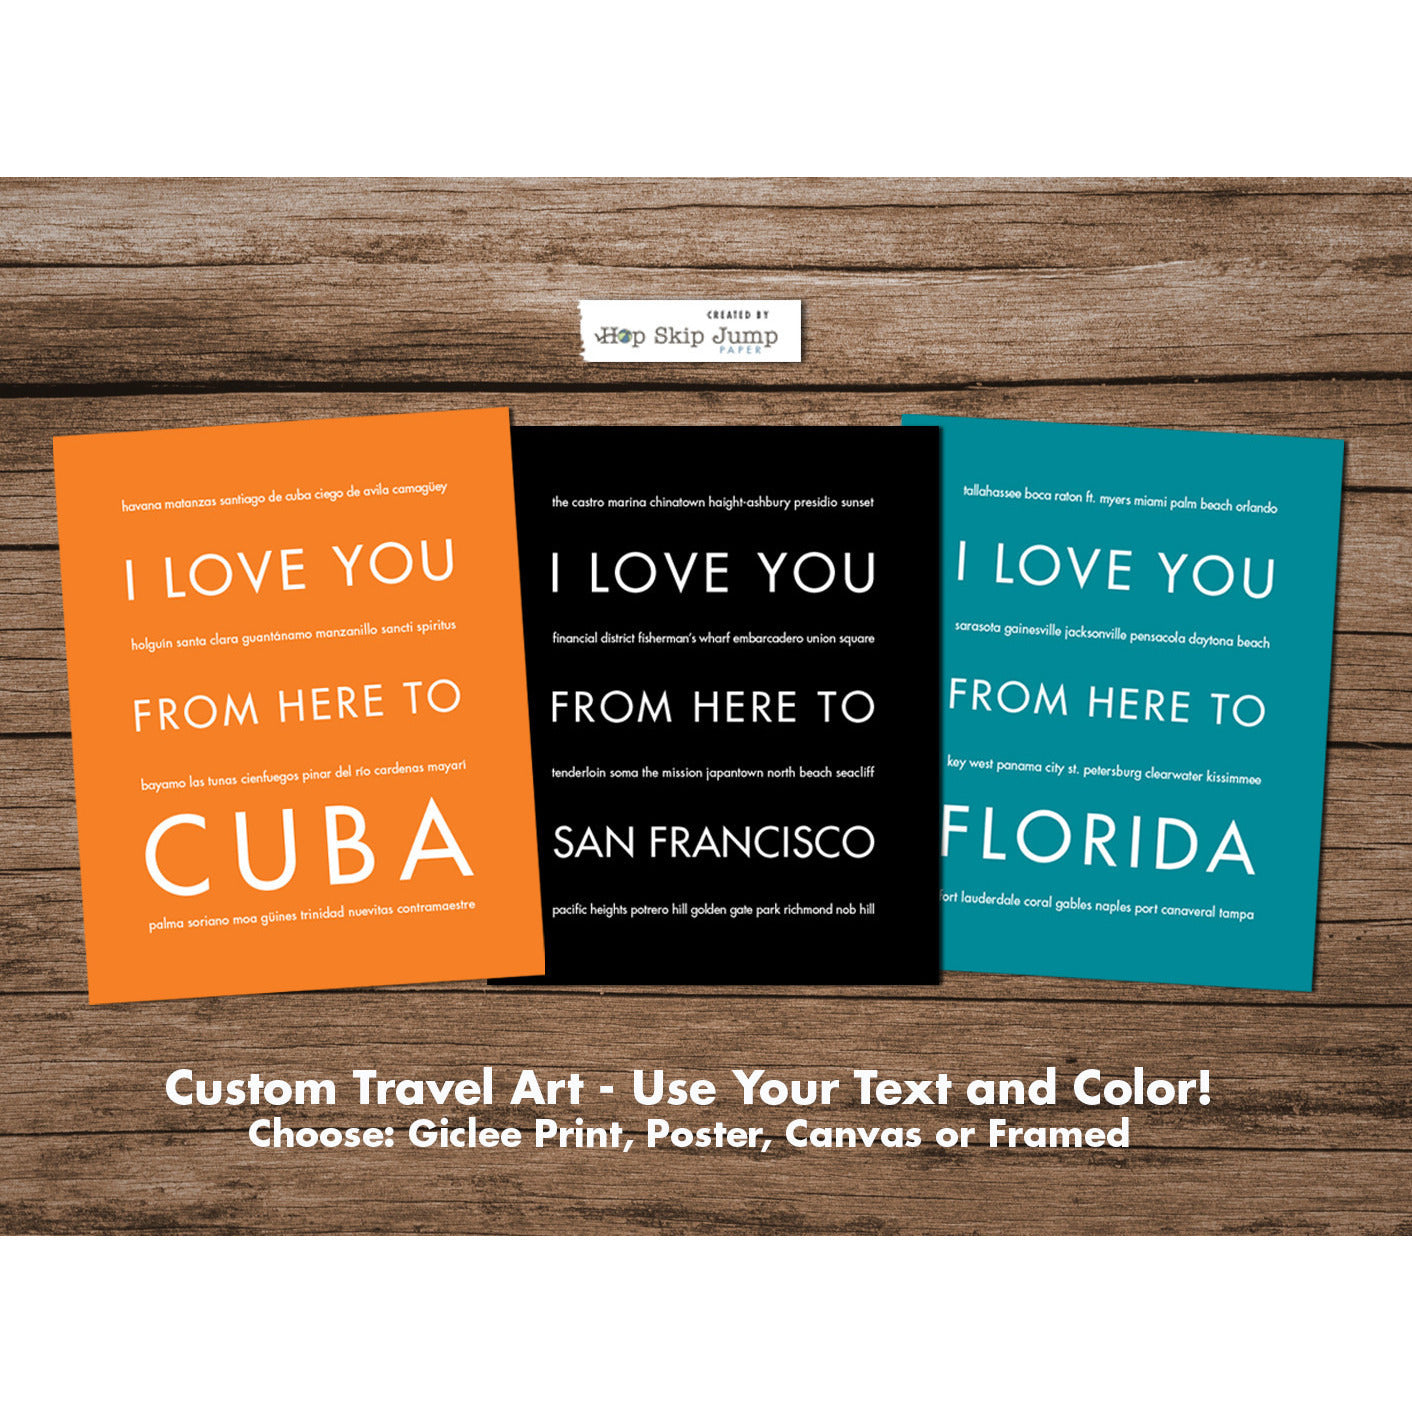 Custom Travel Art Print - Personalized Wall Decor  - Shop Online